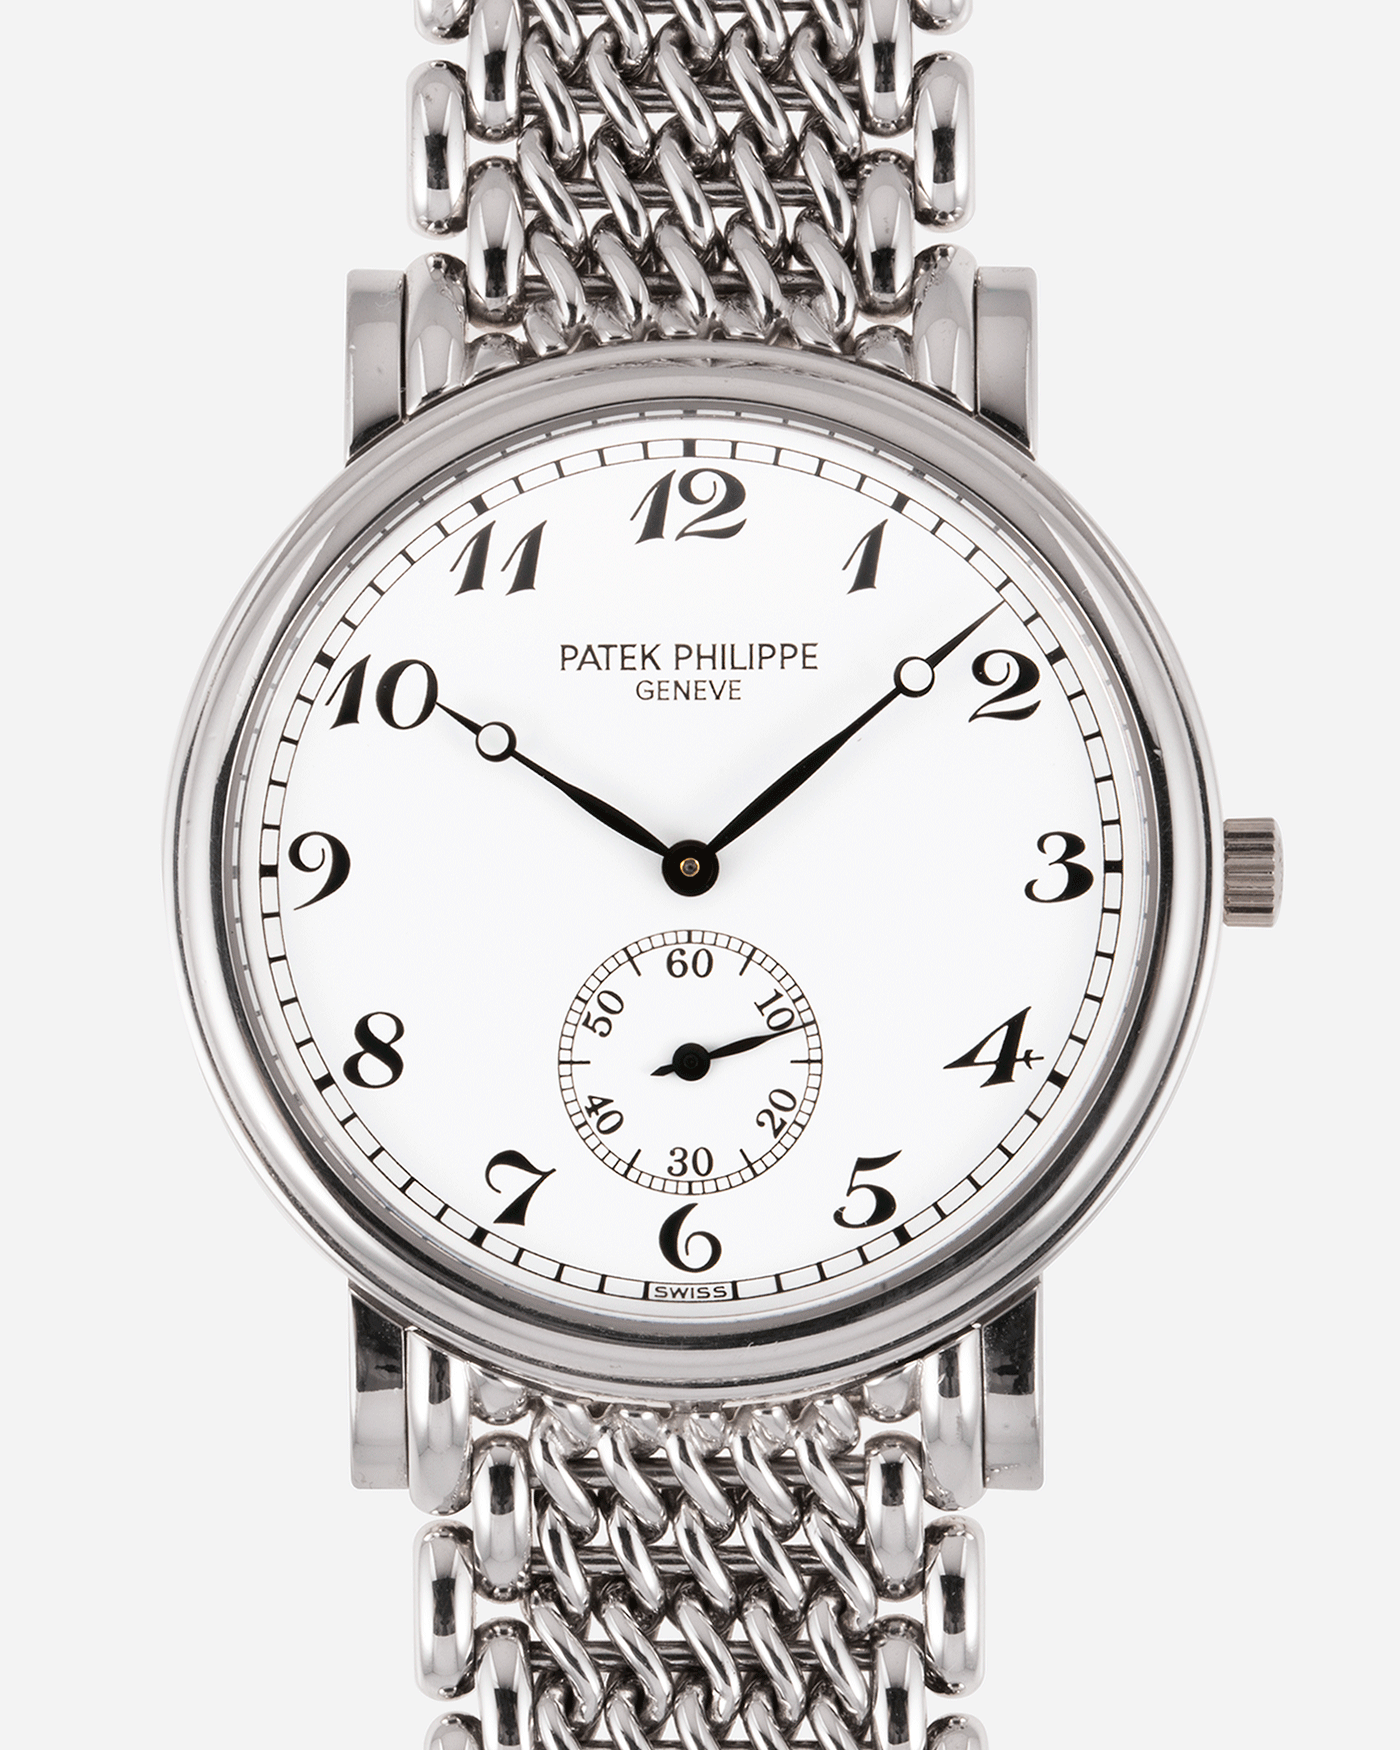 Brand: Patek Philippe Year: 1990's Model: Calatrava Reference: 5022G Material: 18k White Gold Movement: Patek Philippe Cal. 215 Case Diameter: 33.4mm Lug Width: 18mm Strap: Patek Philippe 18k White Gold Bracelet